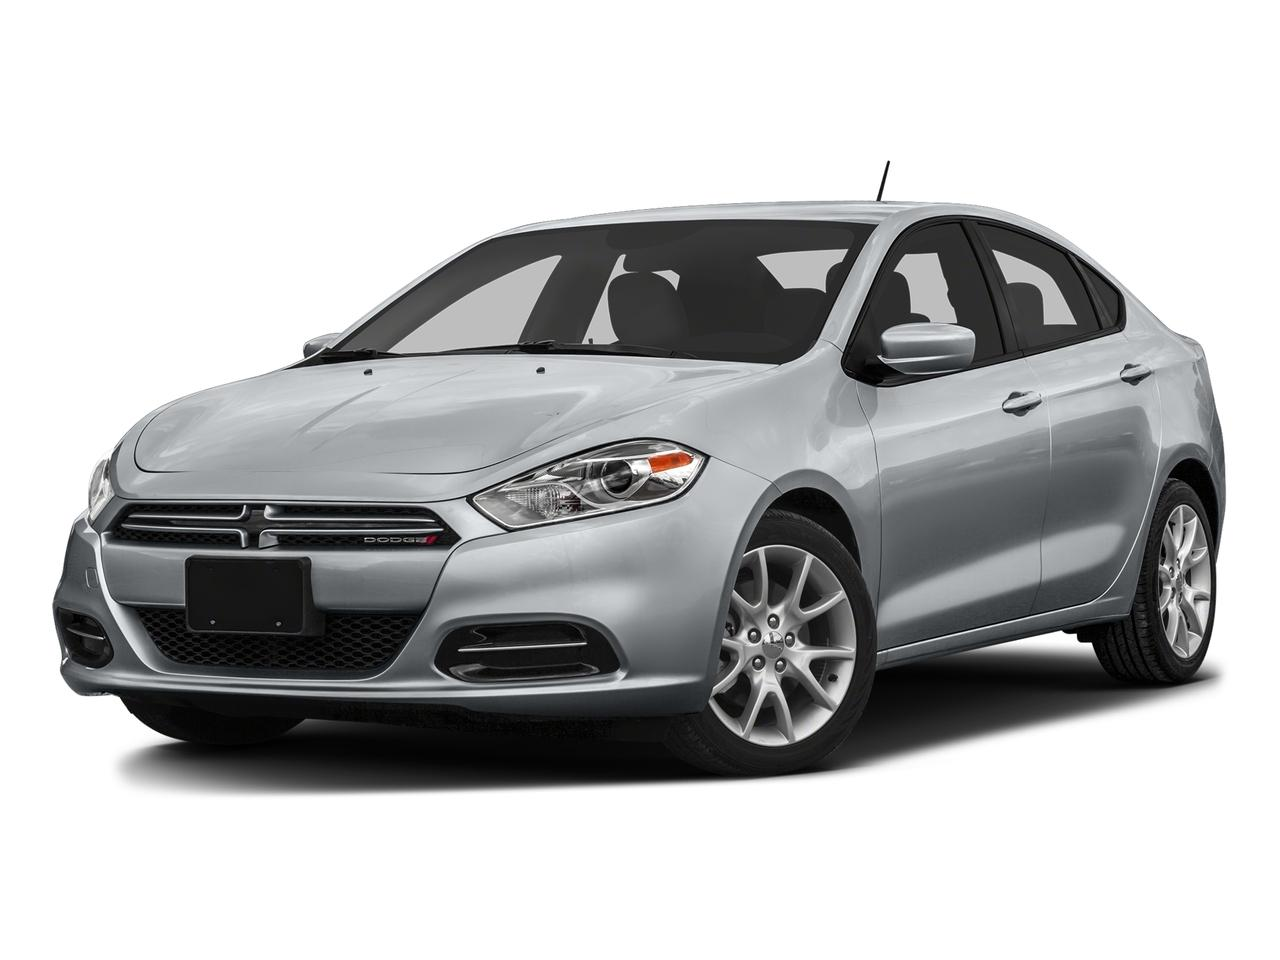 2016 Dodge Dart Vehicle Photo in American Fork, UT 84003